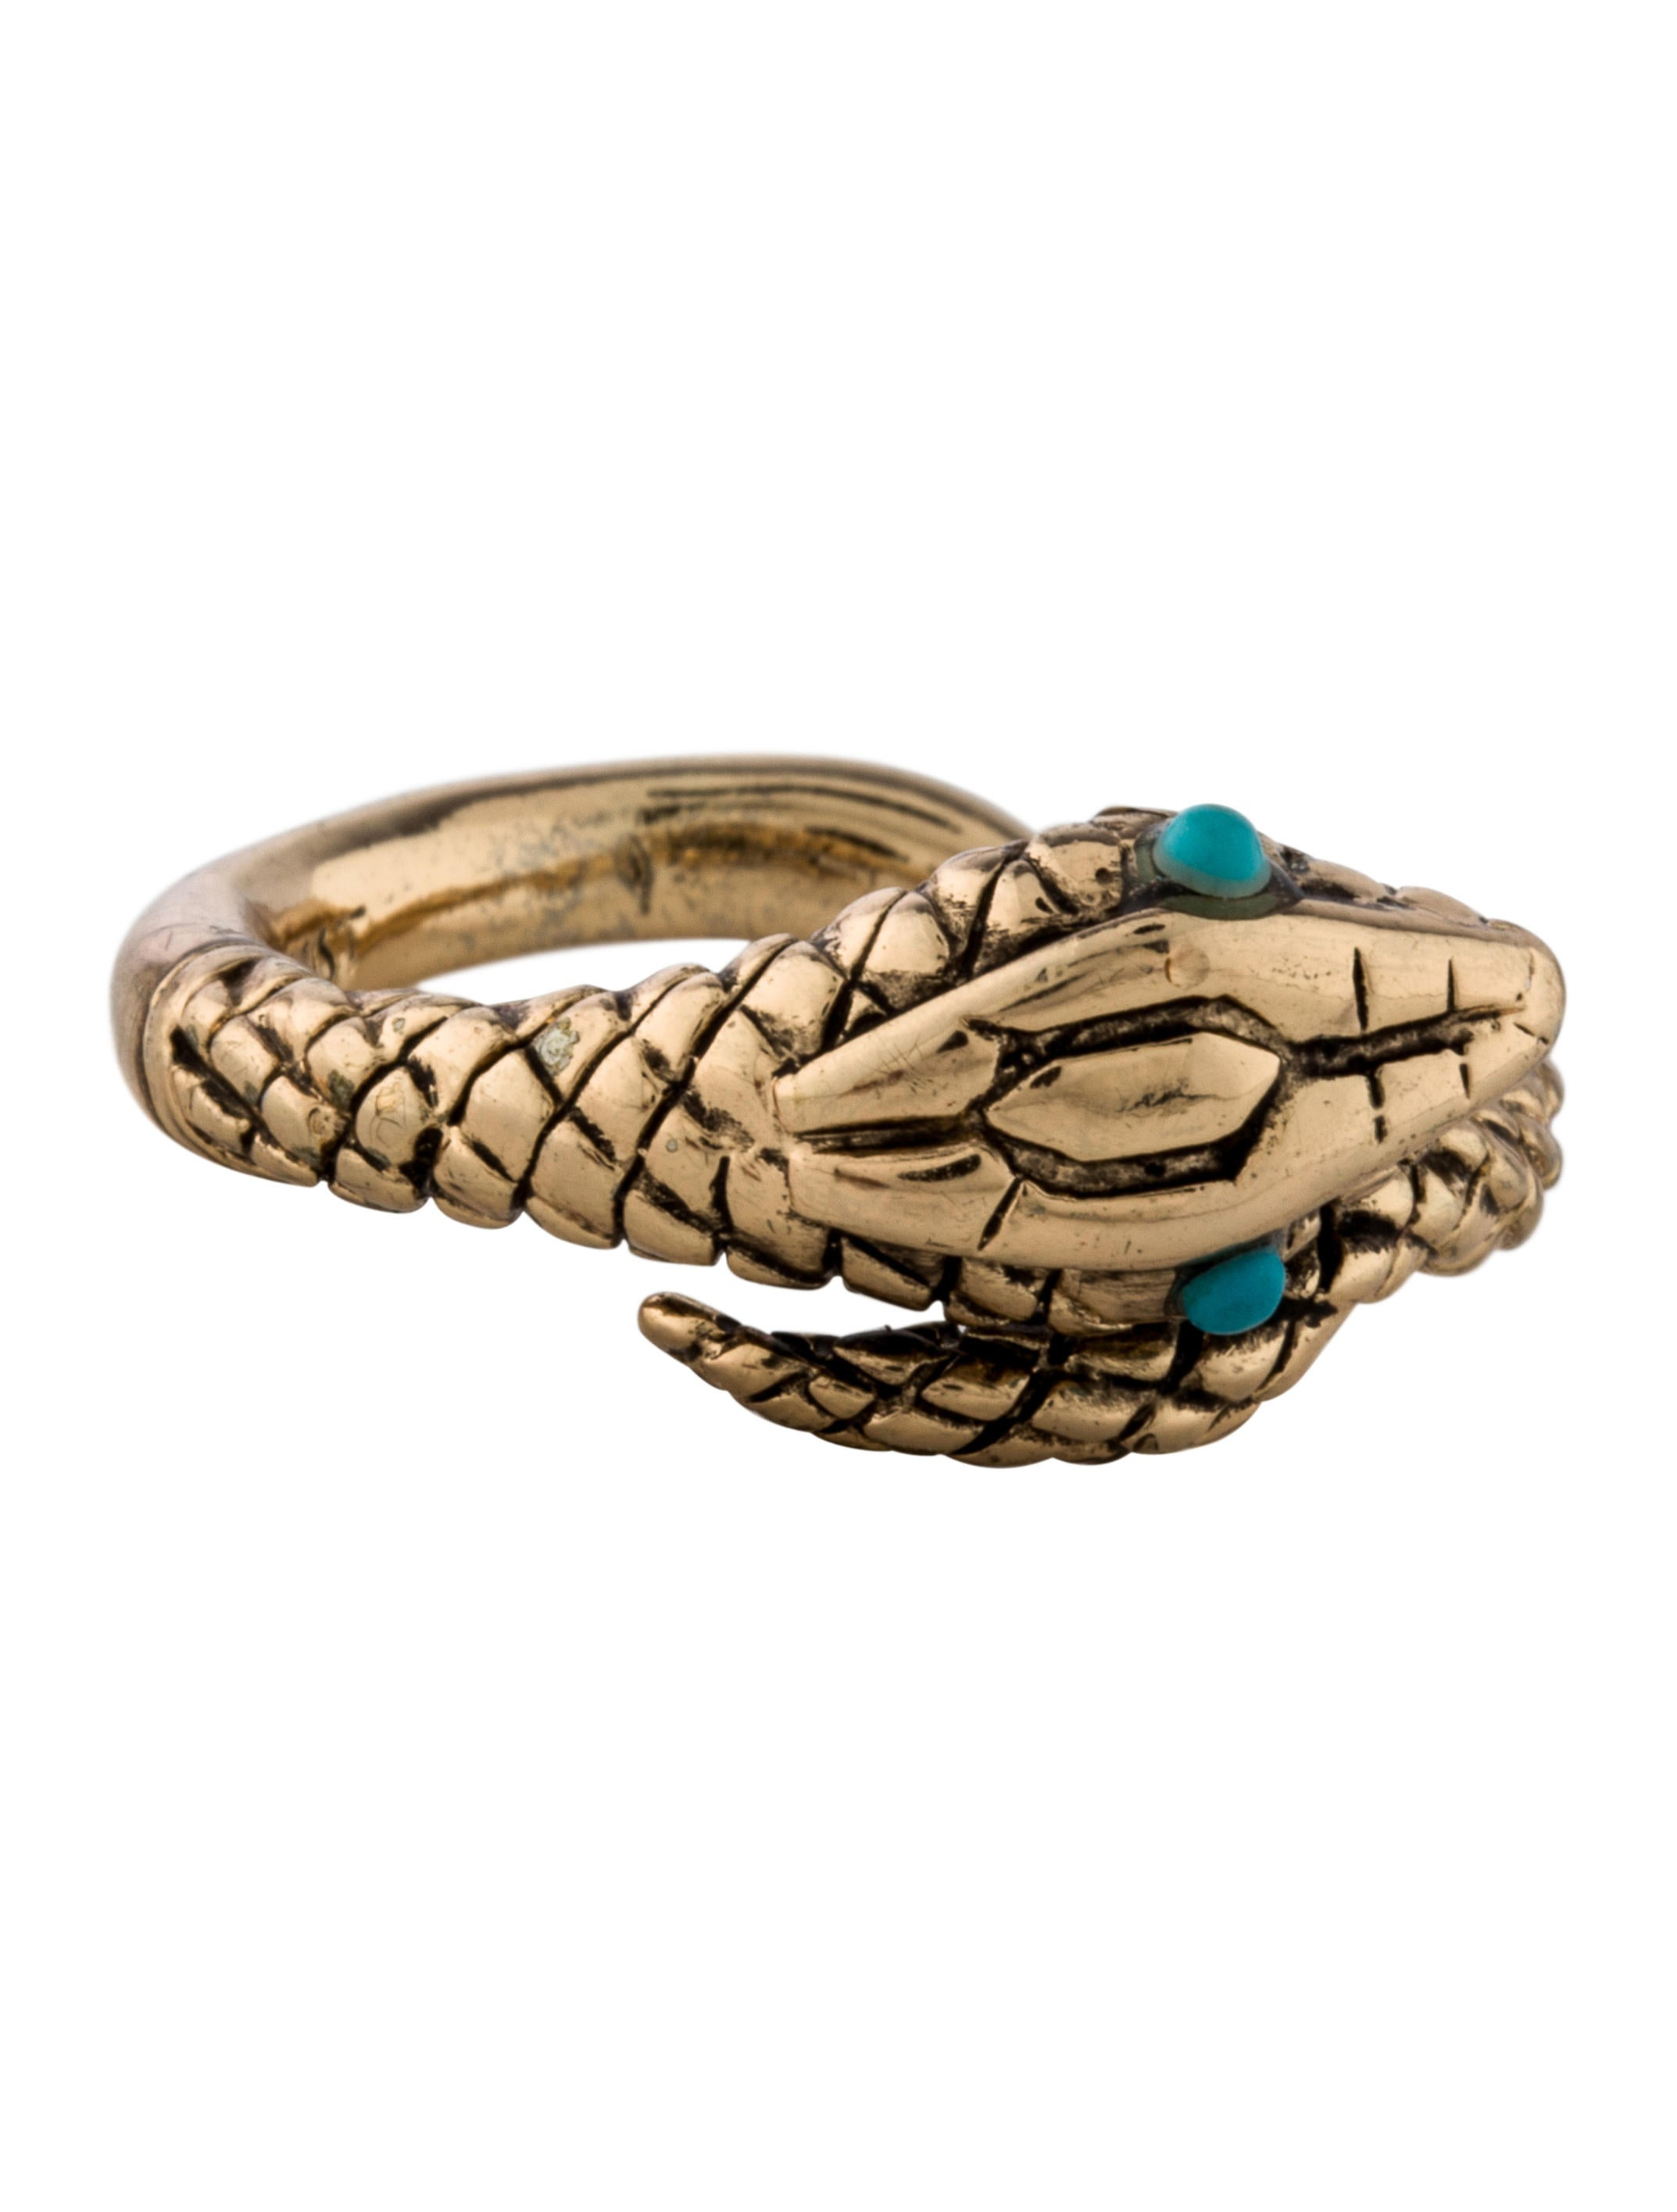 rings master blue hires ring products serpent jewelry diaboli serpentpreyring dk kill sapphire vanitas